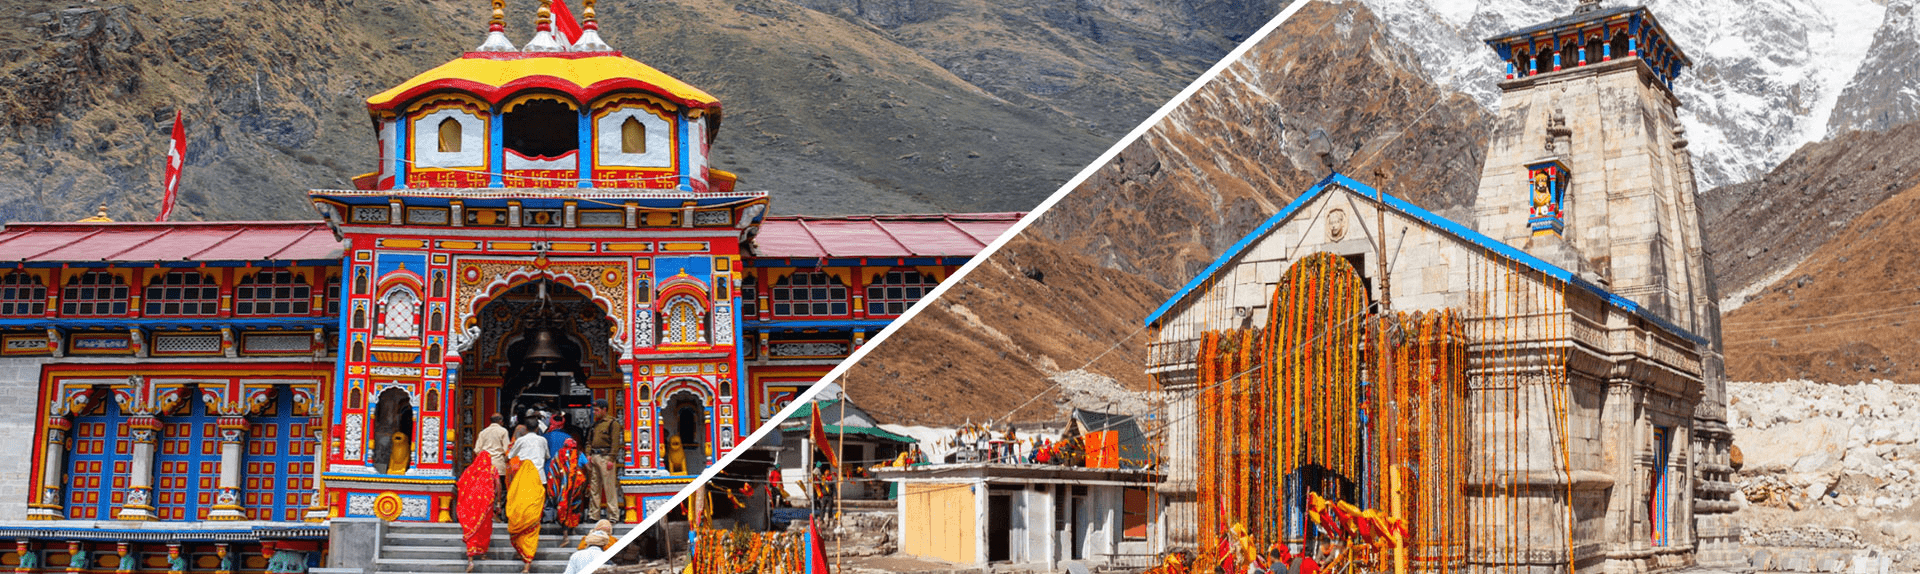 Badrinath temple and Kedarnath temple during Do Dham Yatra Uttarakhand is abode of Lord Vishnu and Lord Shiva